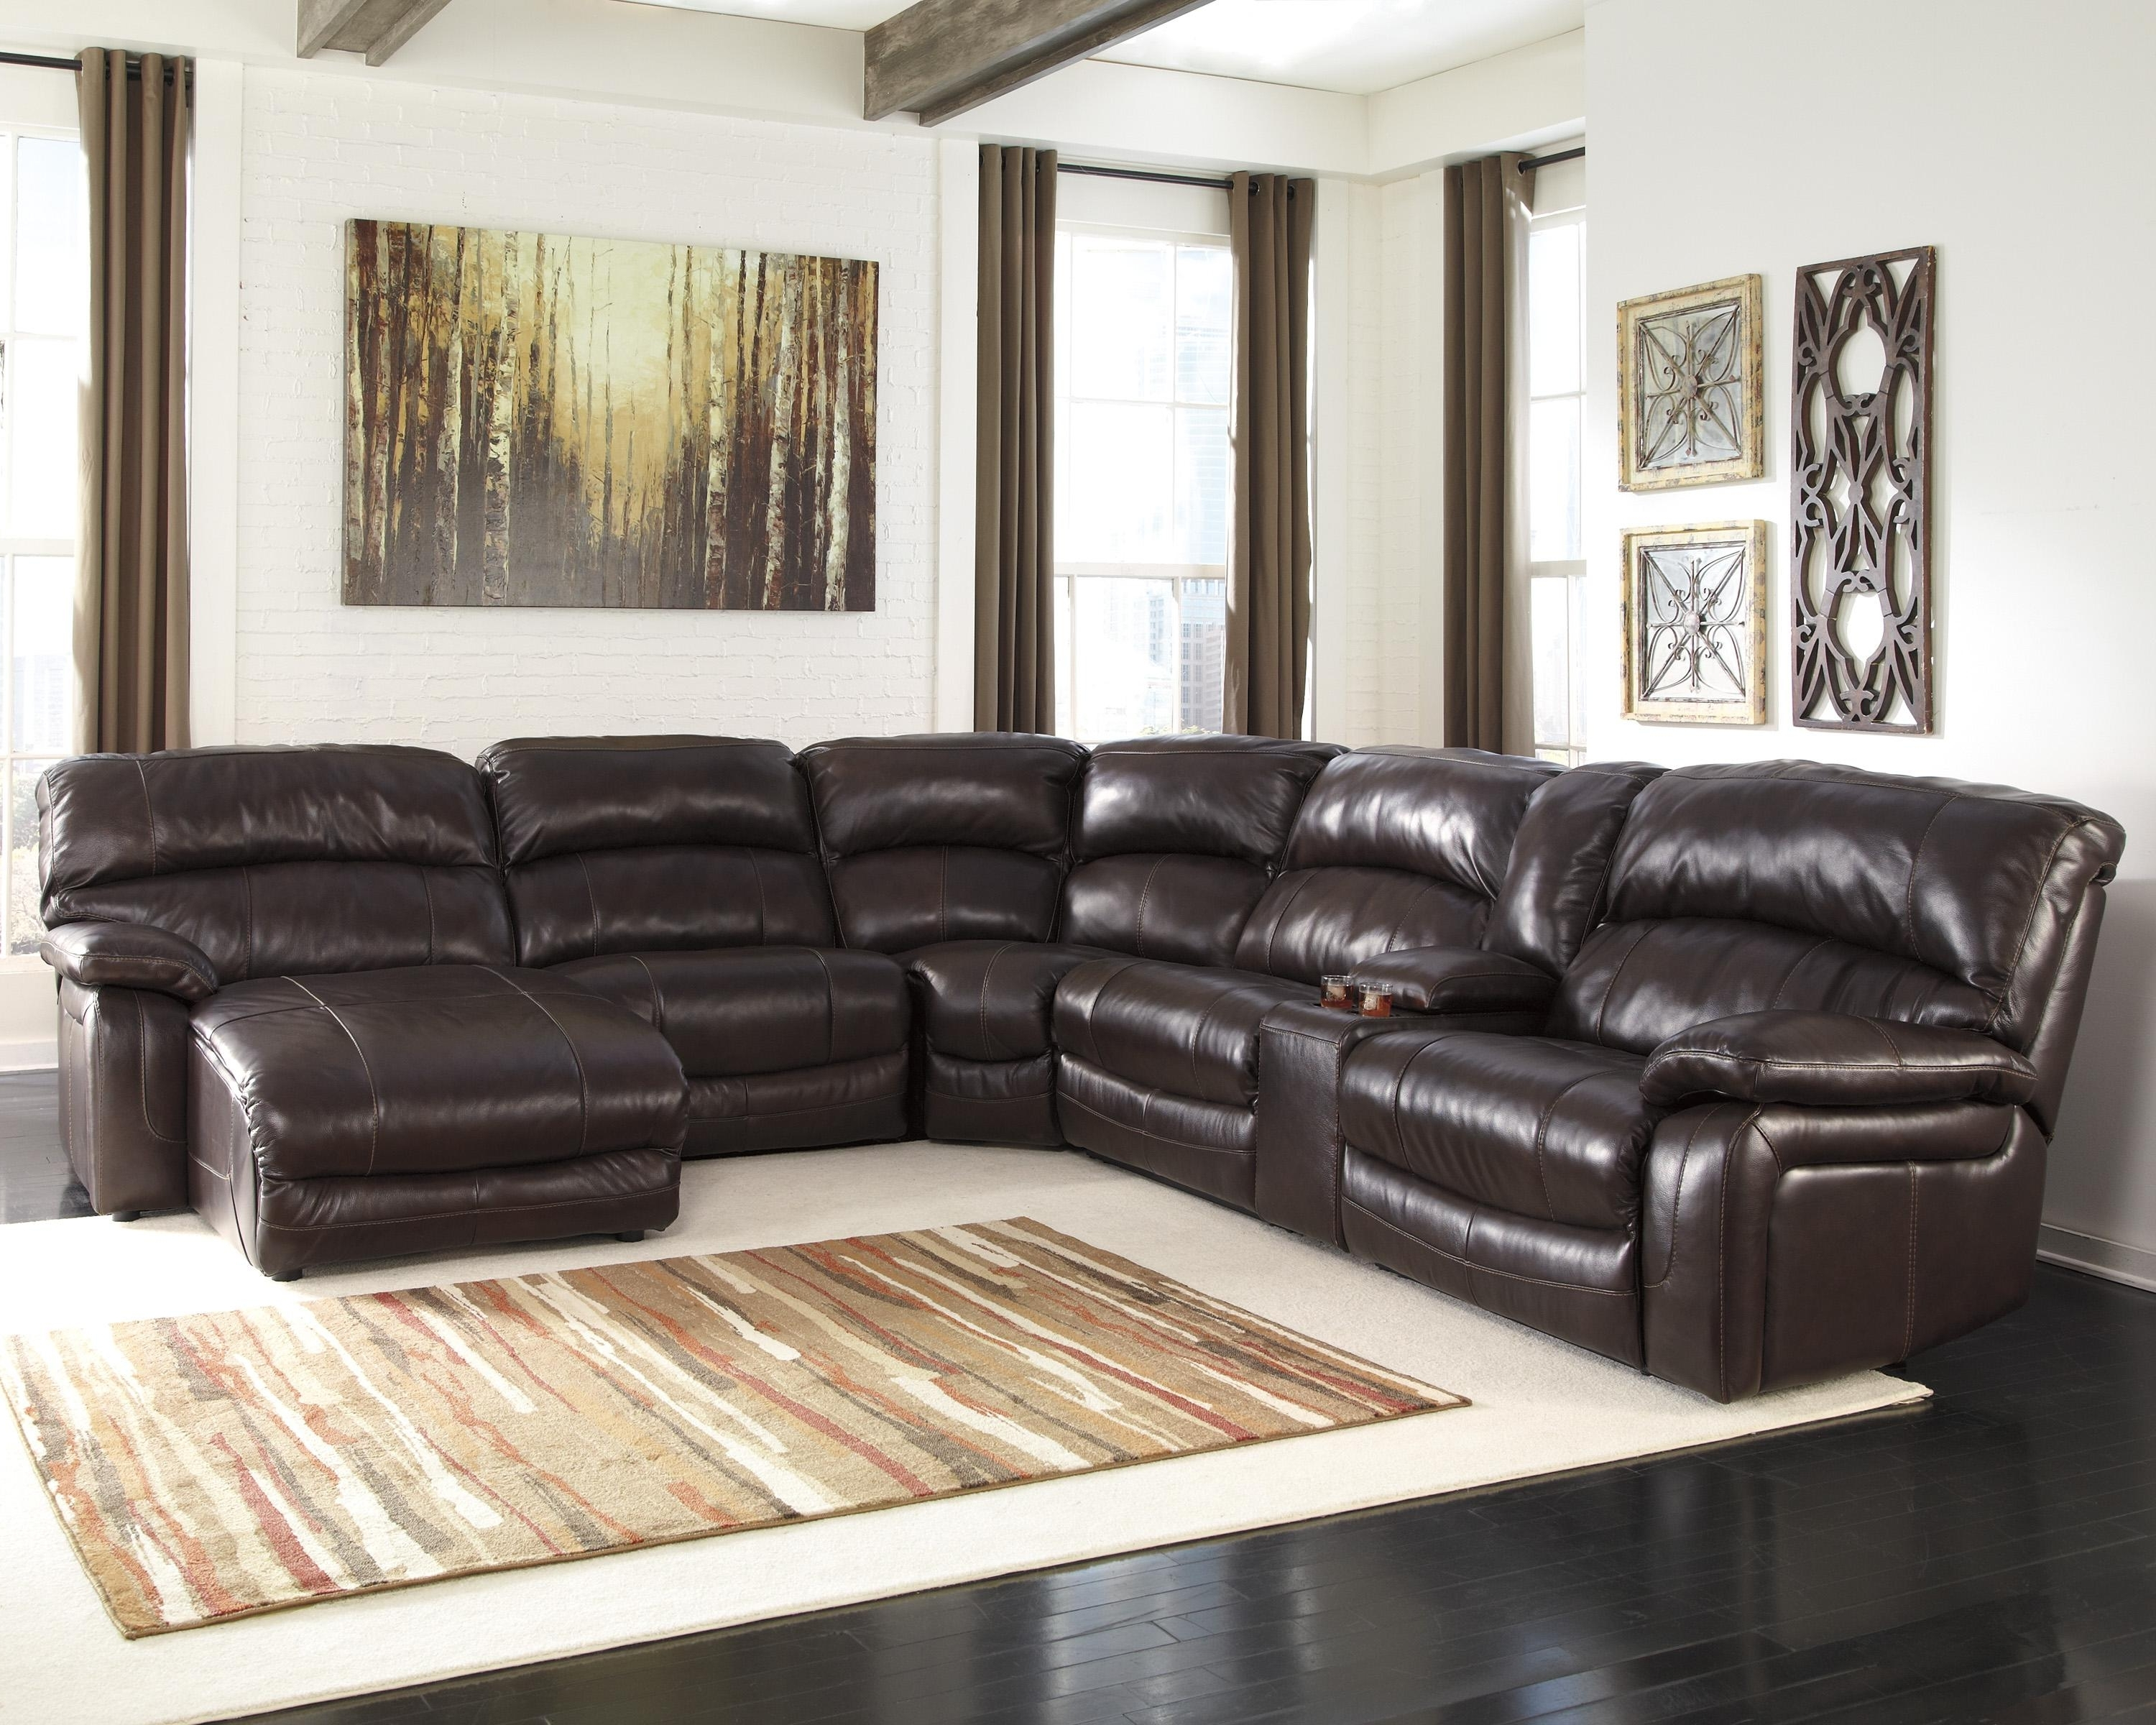 Reclining Sectional W/ Console & Right Press Back Chaise Throughout Trendy Brown Leather Sectionals With Chaise (View 12 of 15)